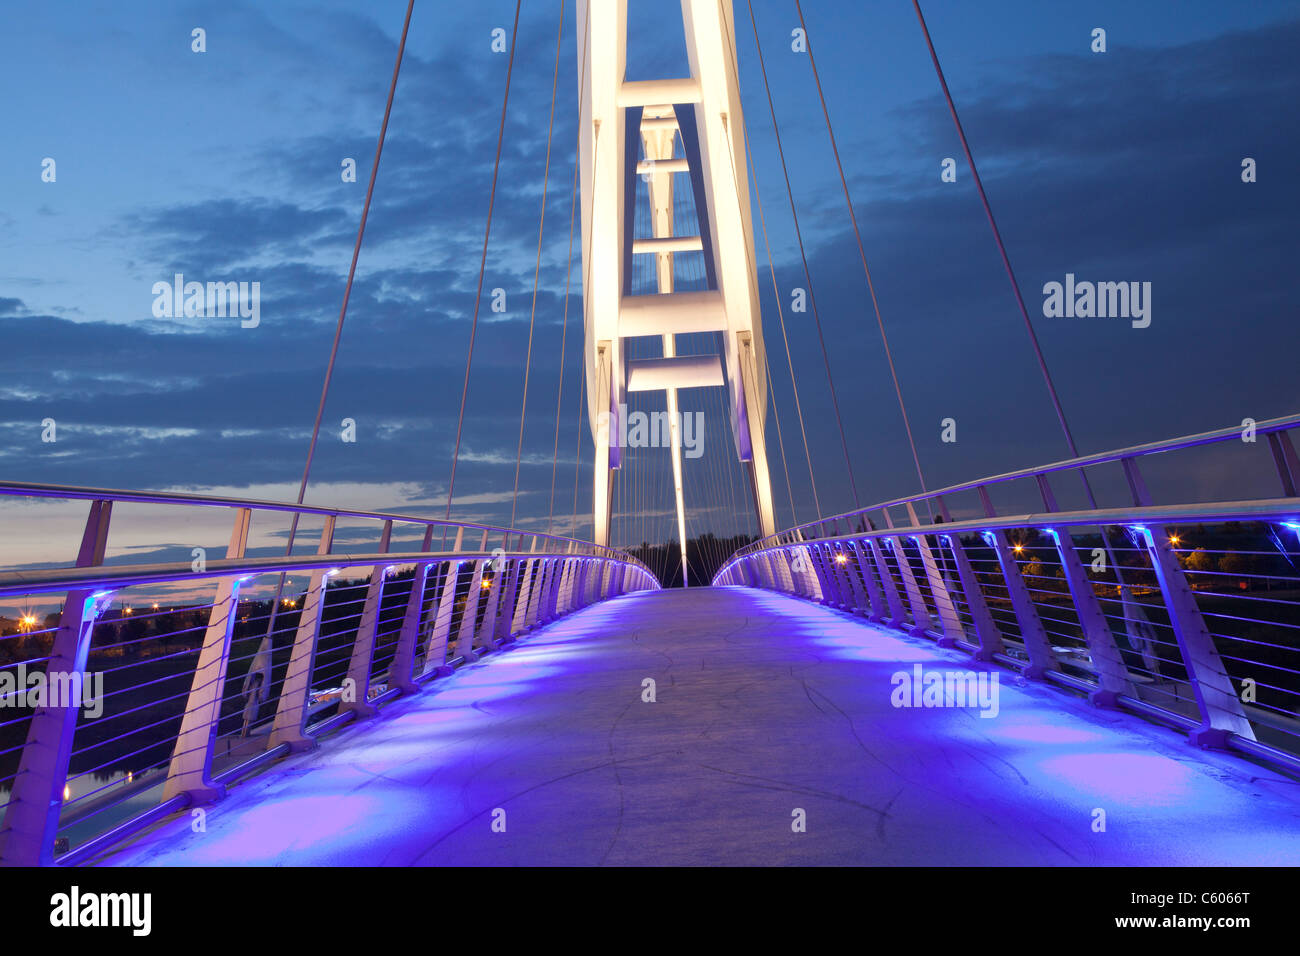 View along illuminated Infinity bridge, Stockton-on-Tees, at night. - Stock Image